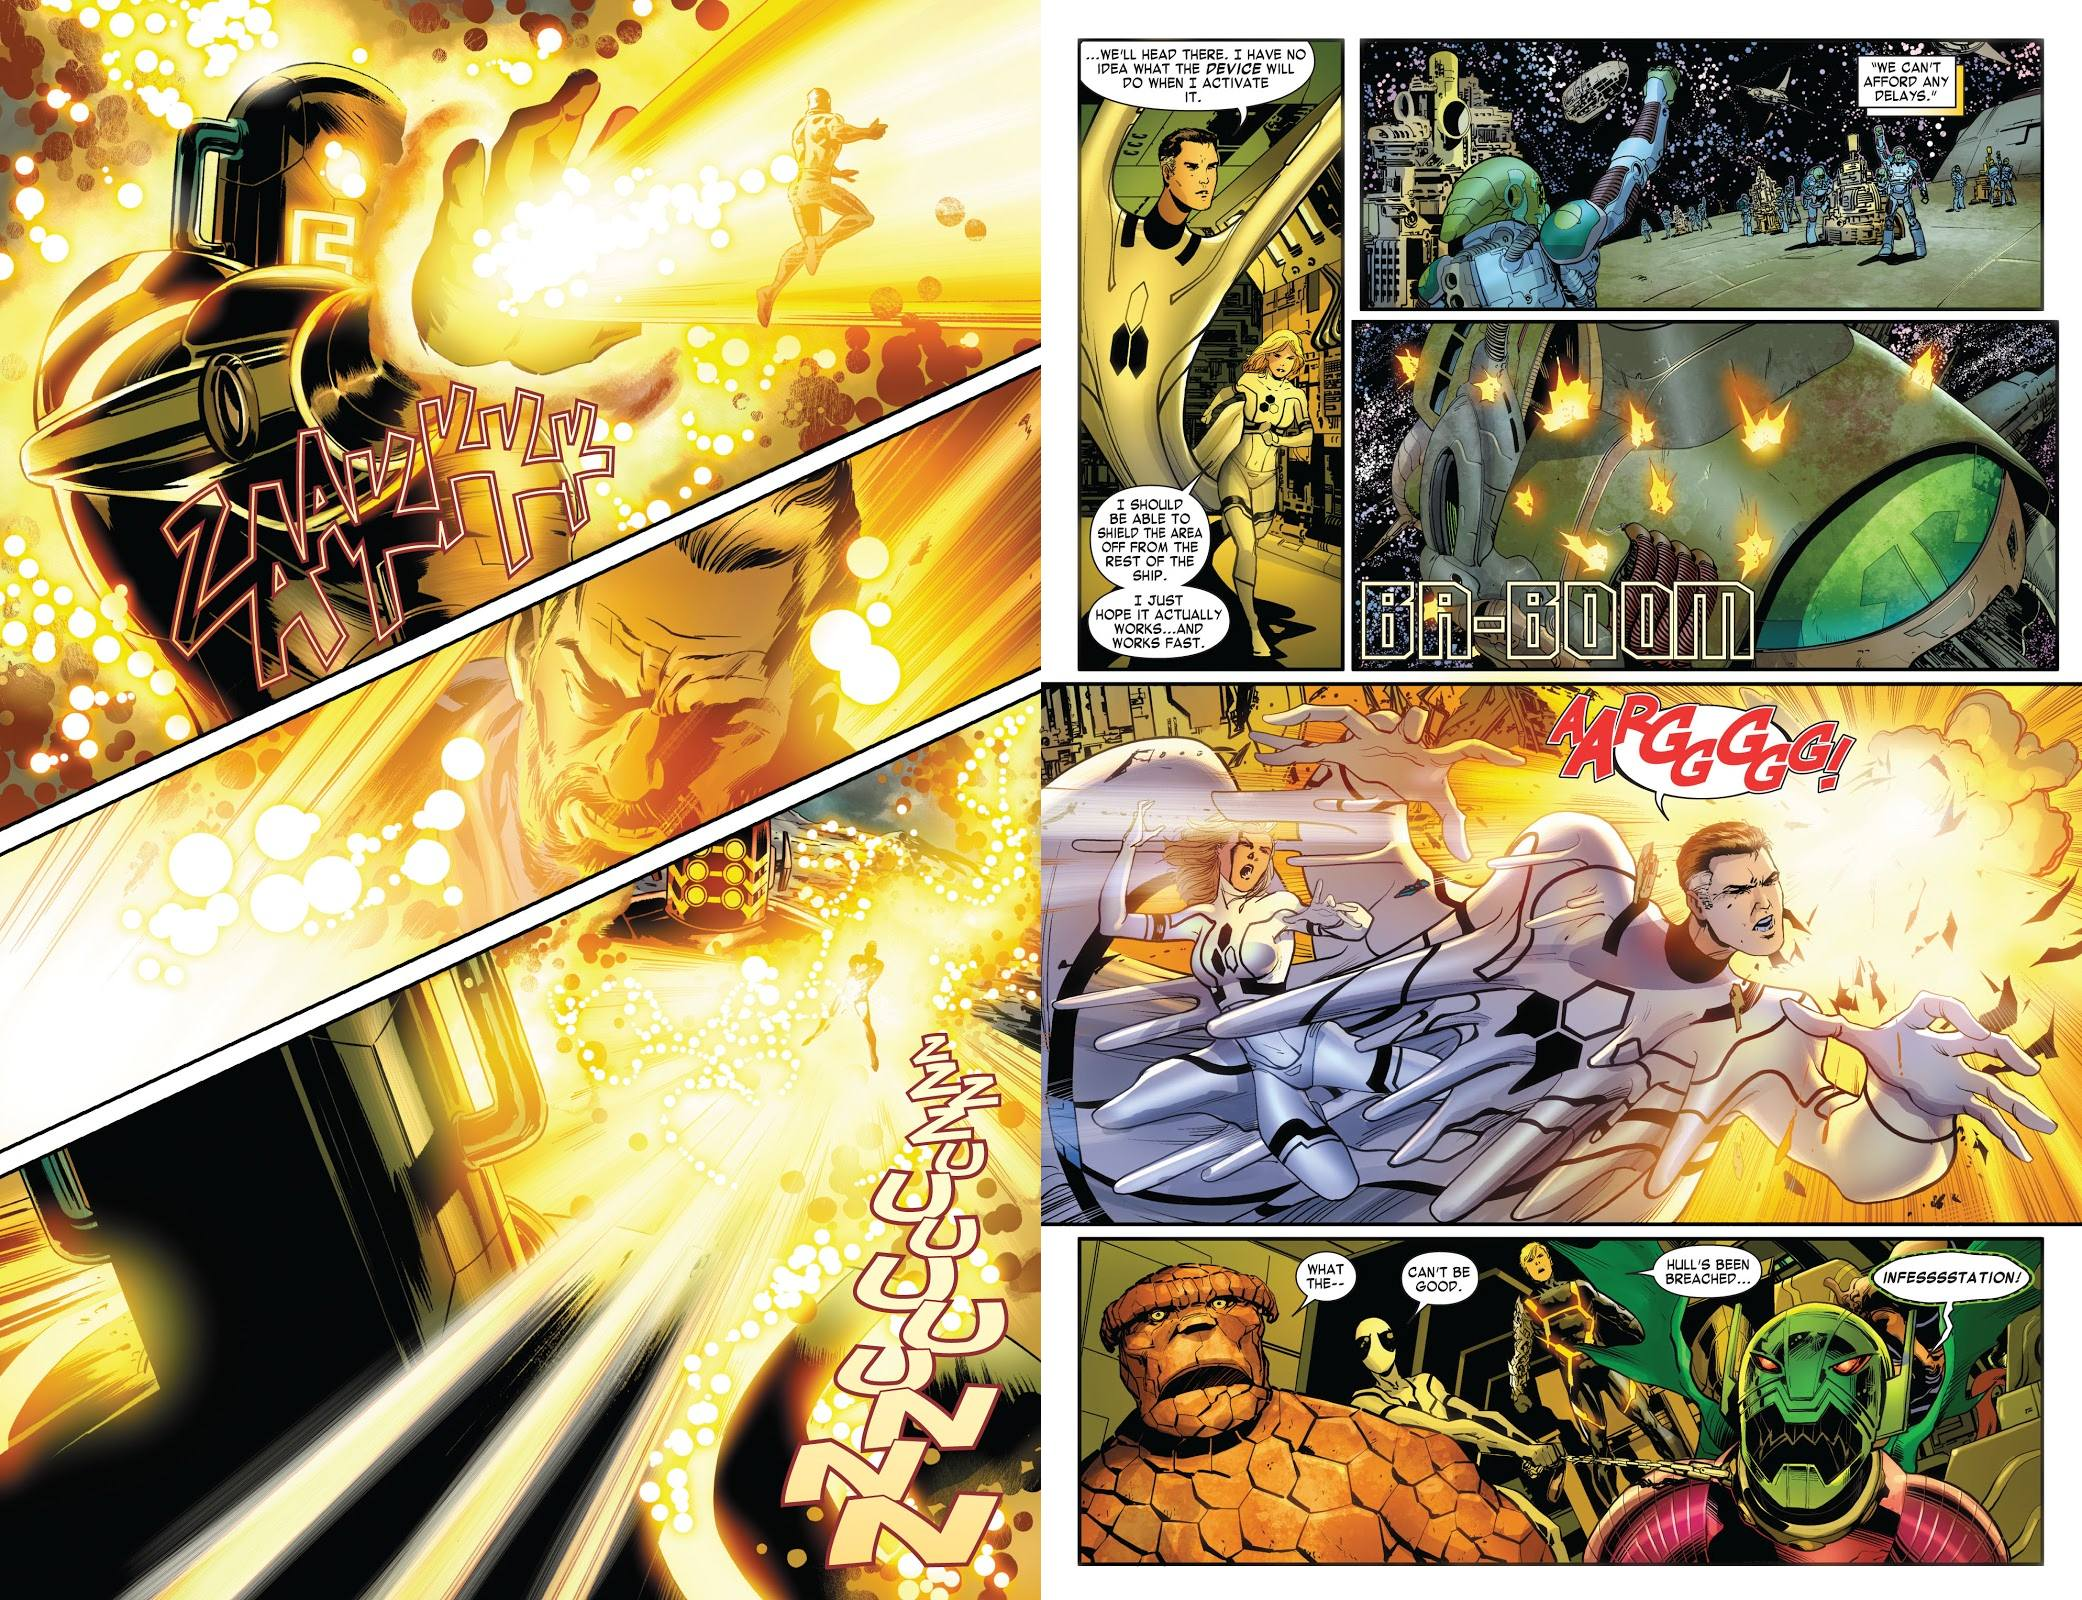 Fantastic Four by Jonathan Hickman Vol 5 review